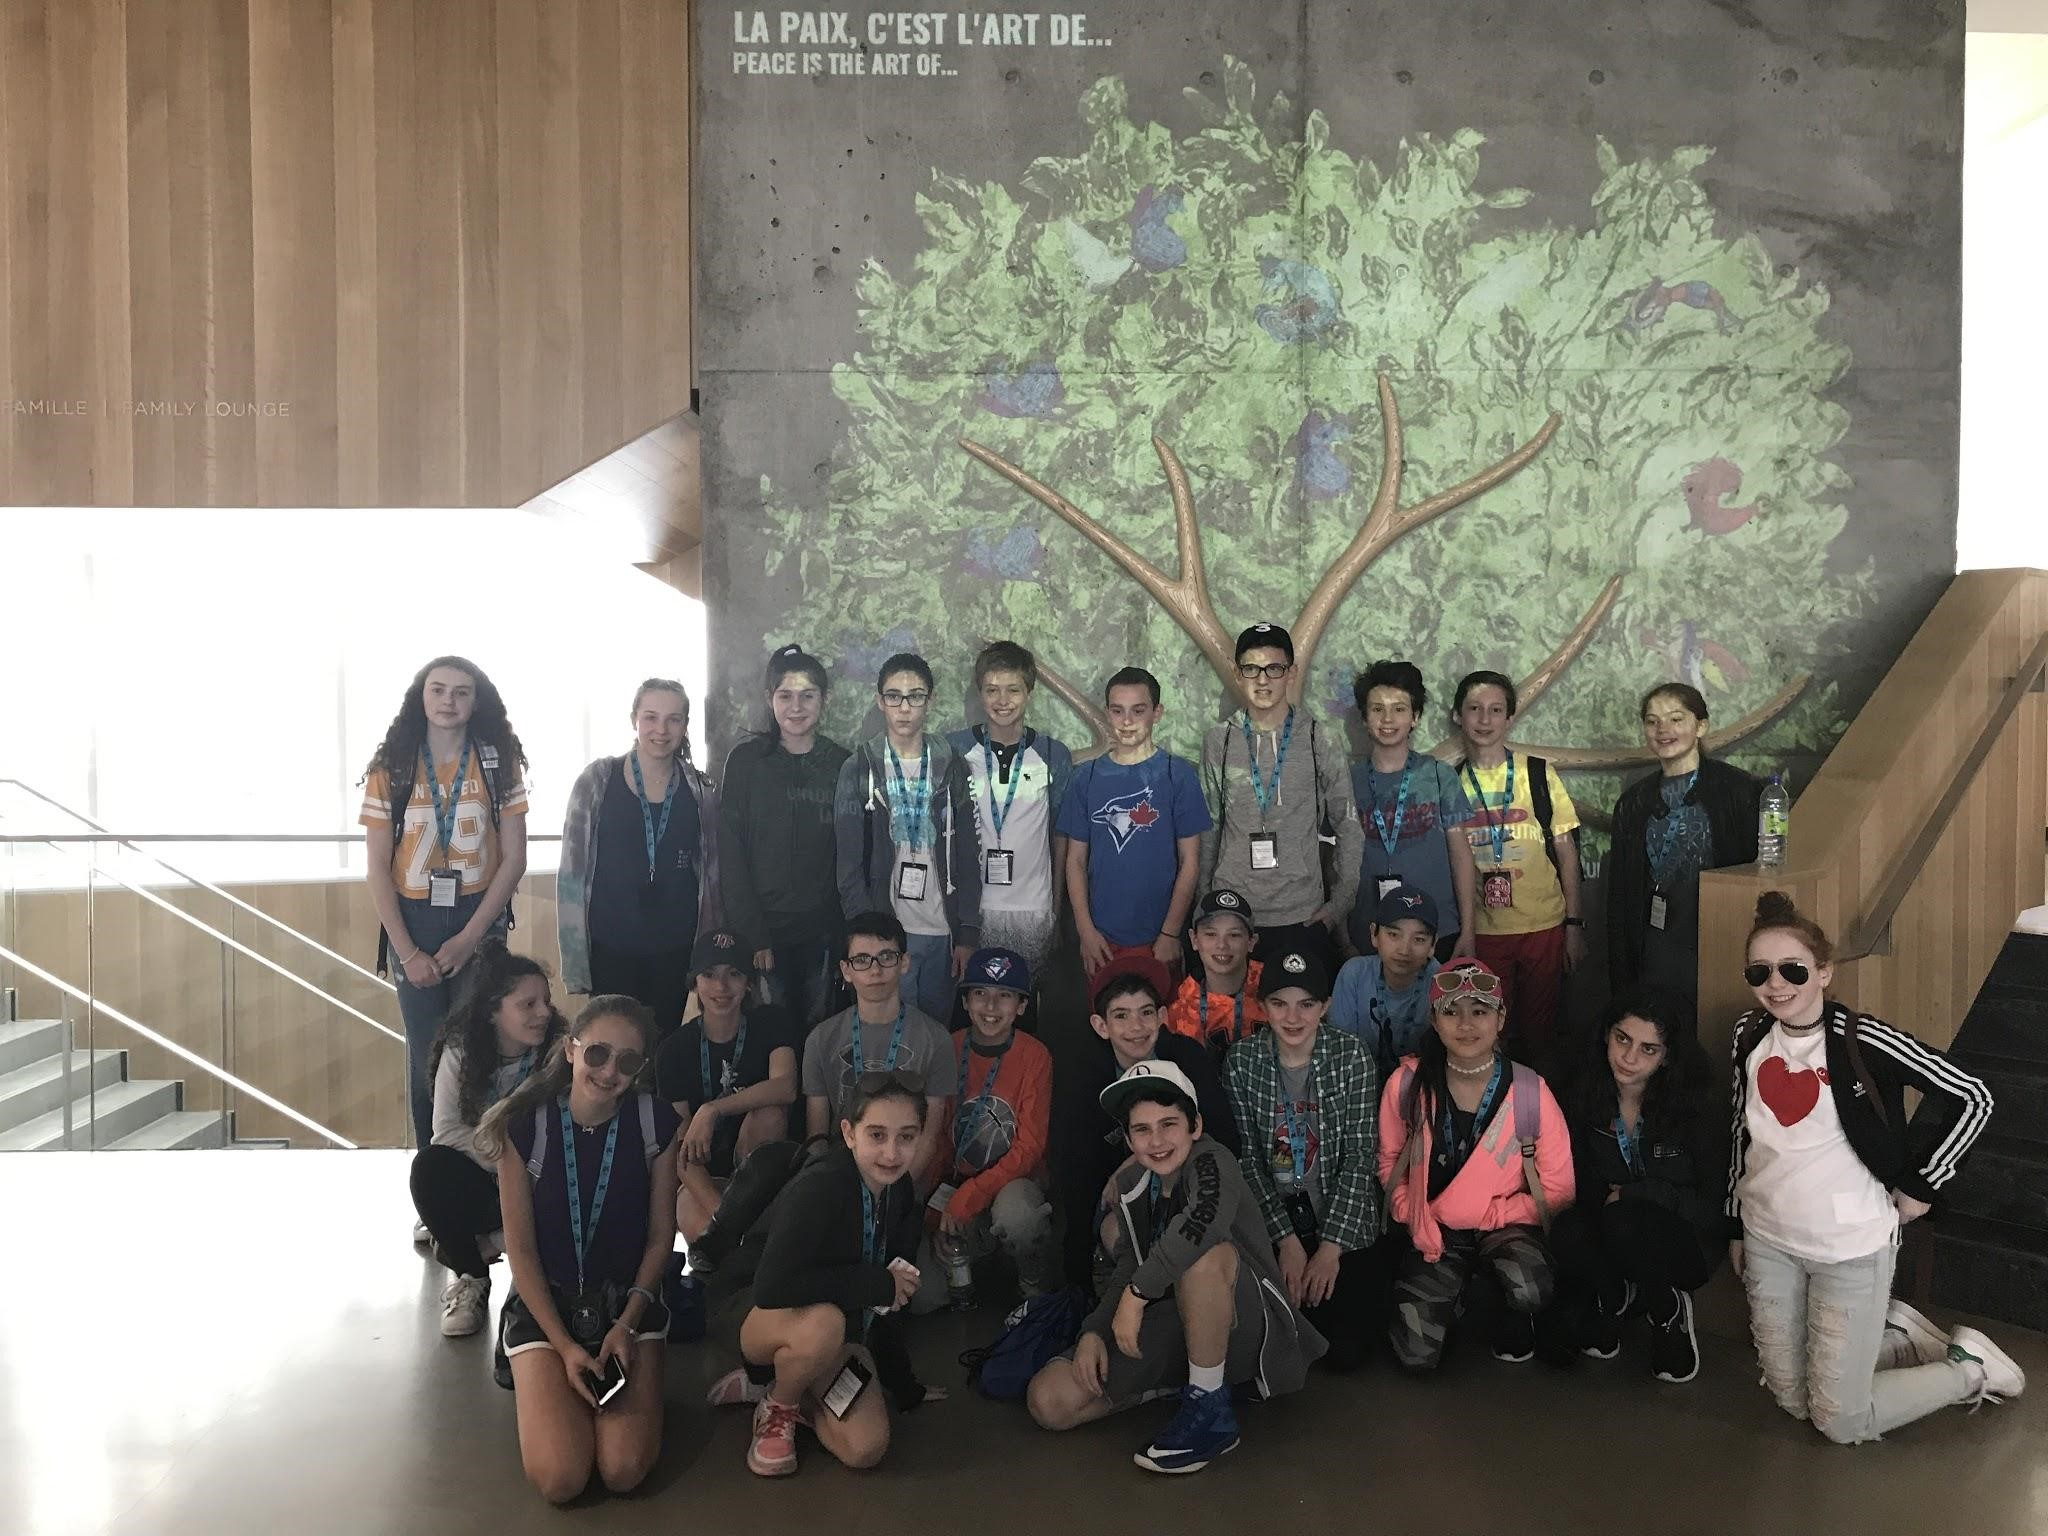 Part of this group's itinerary included a visit to the Montreal Holocaust Museum